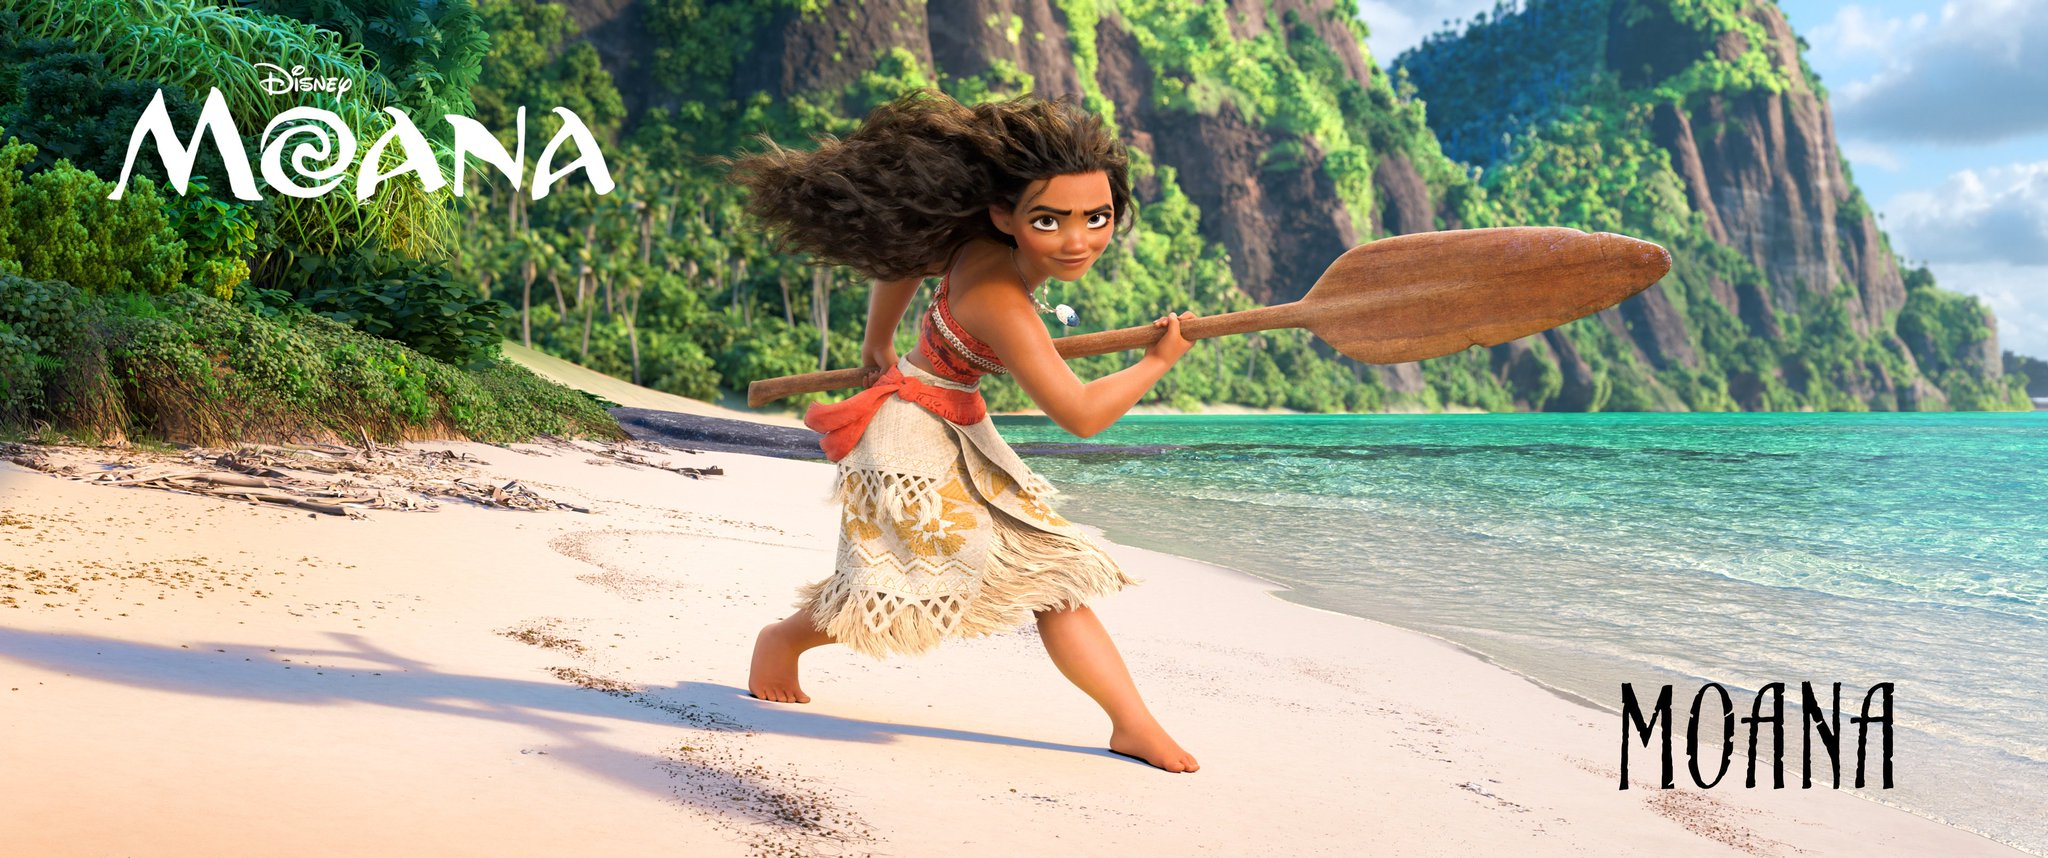 moana animation movies in hindi dubbed free download 300mb 2017